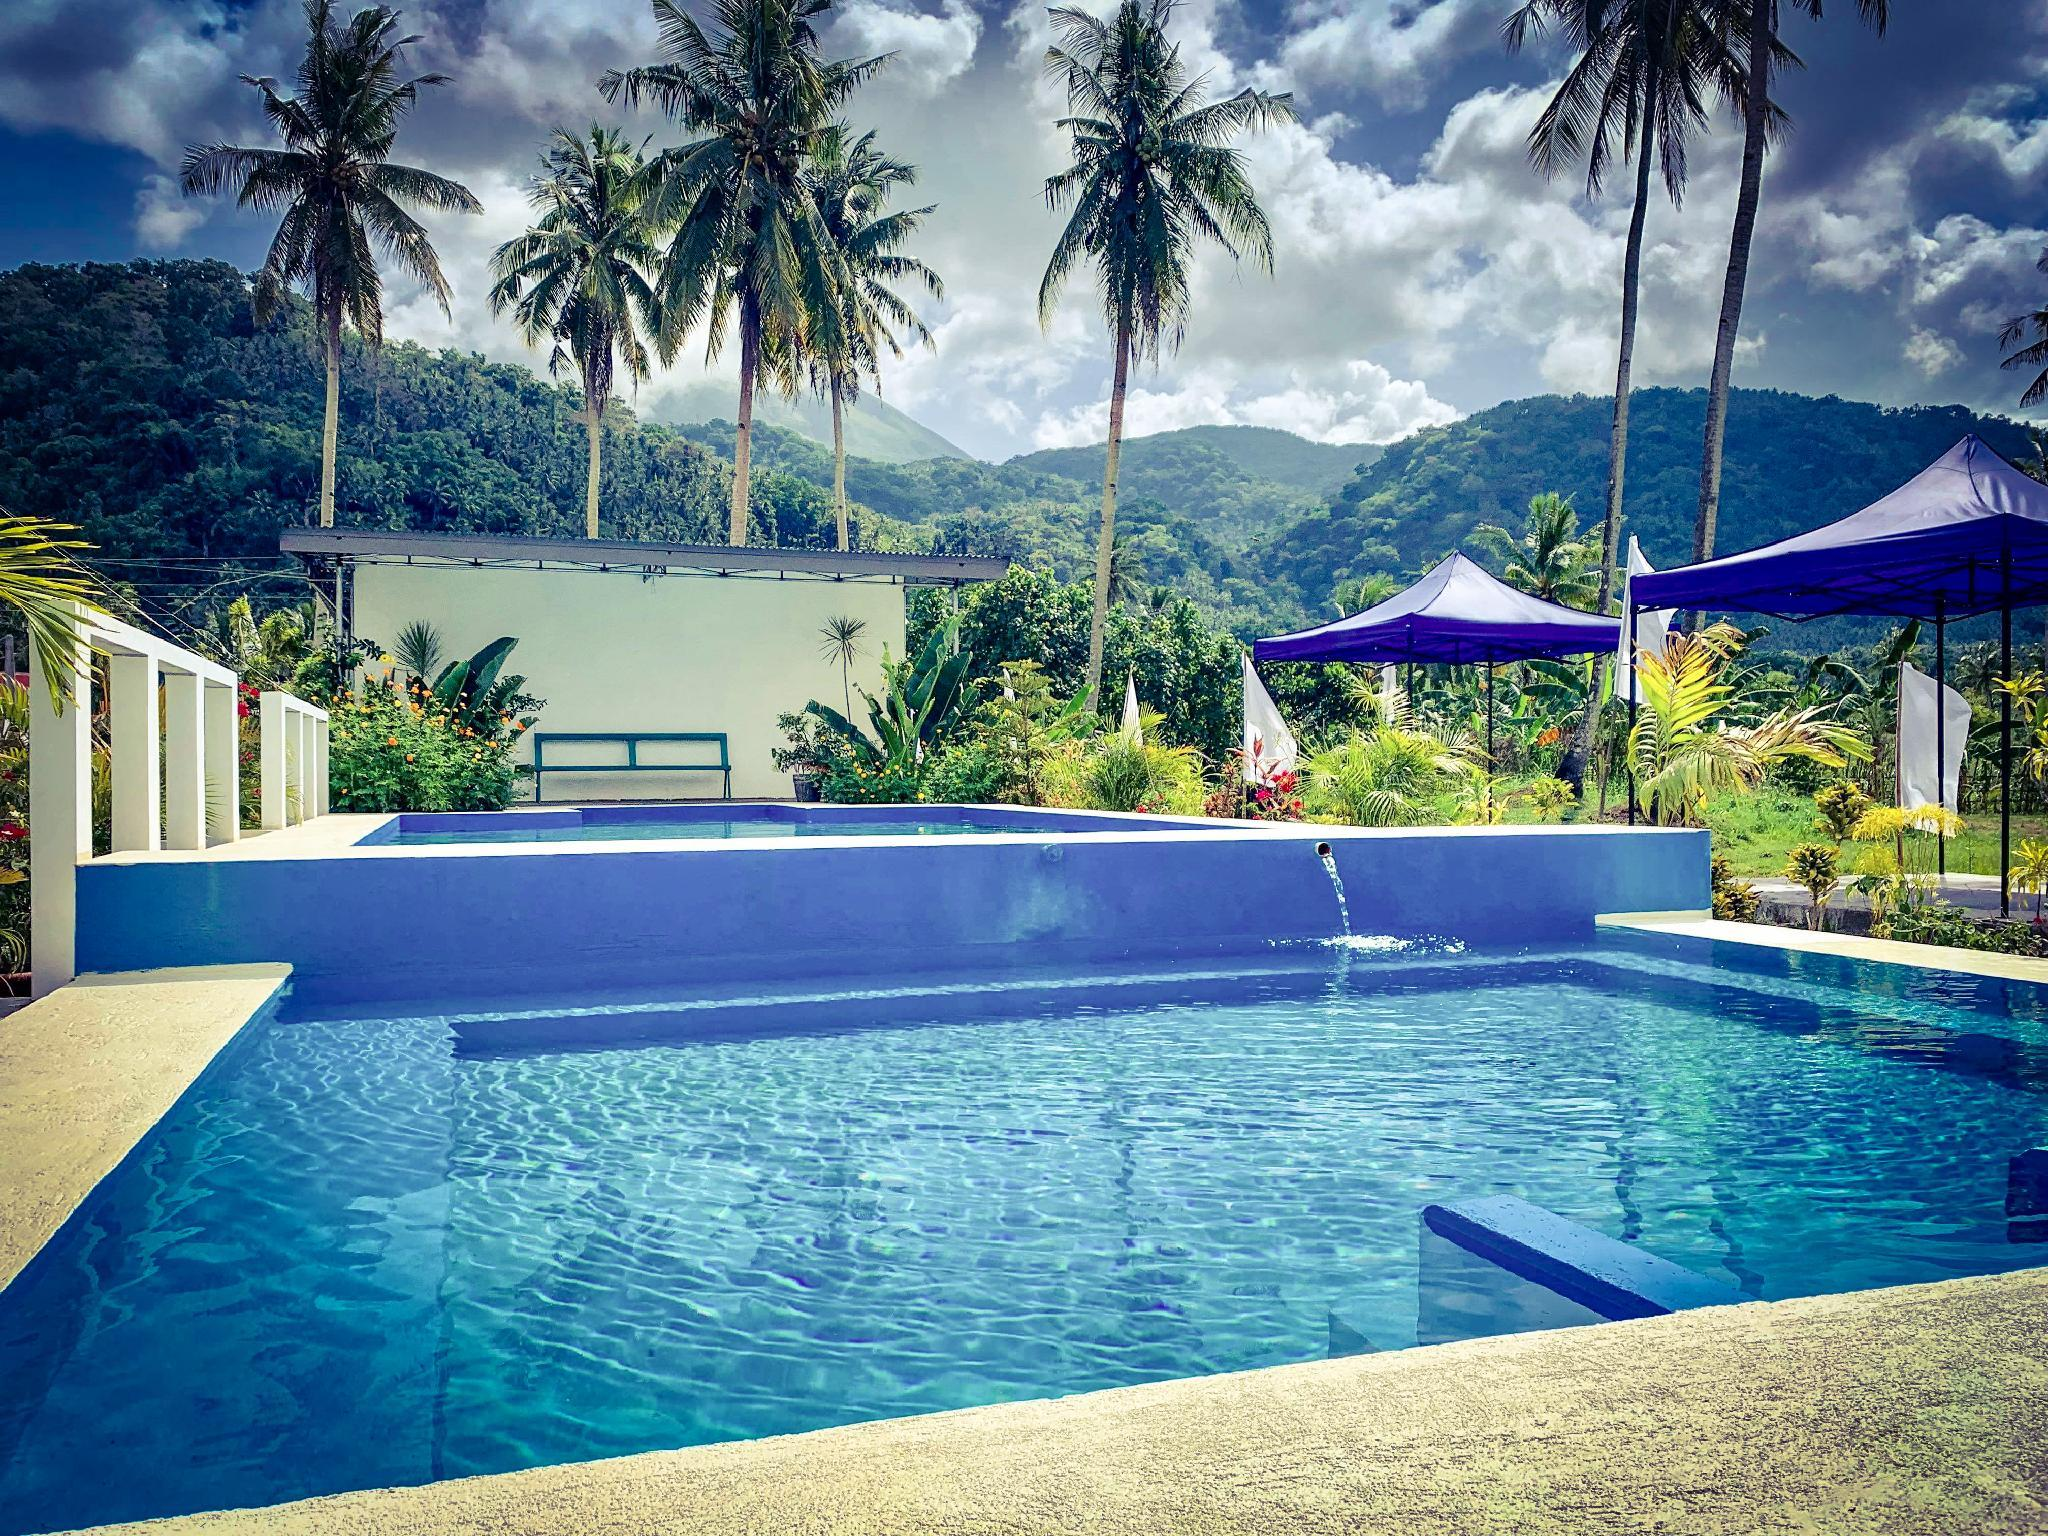 2 Bedroom Vacation Home With Pool And Garden